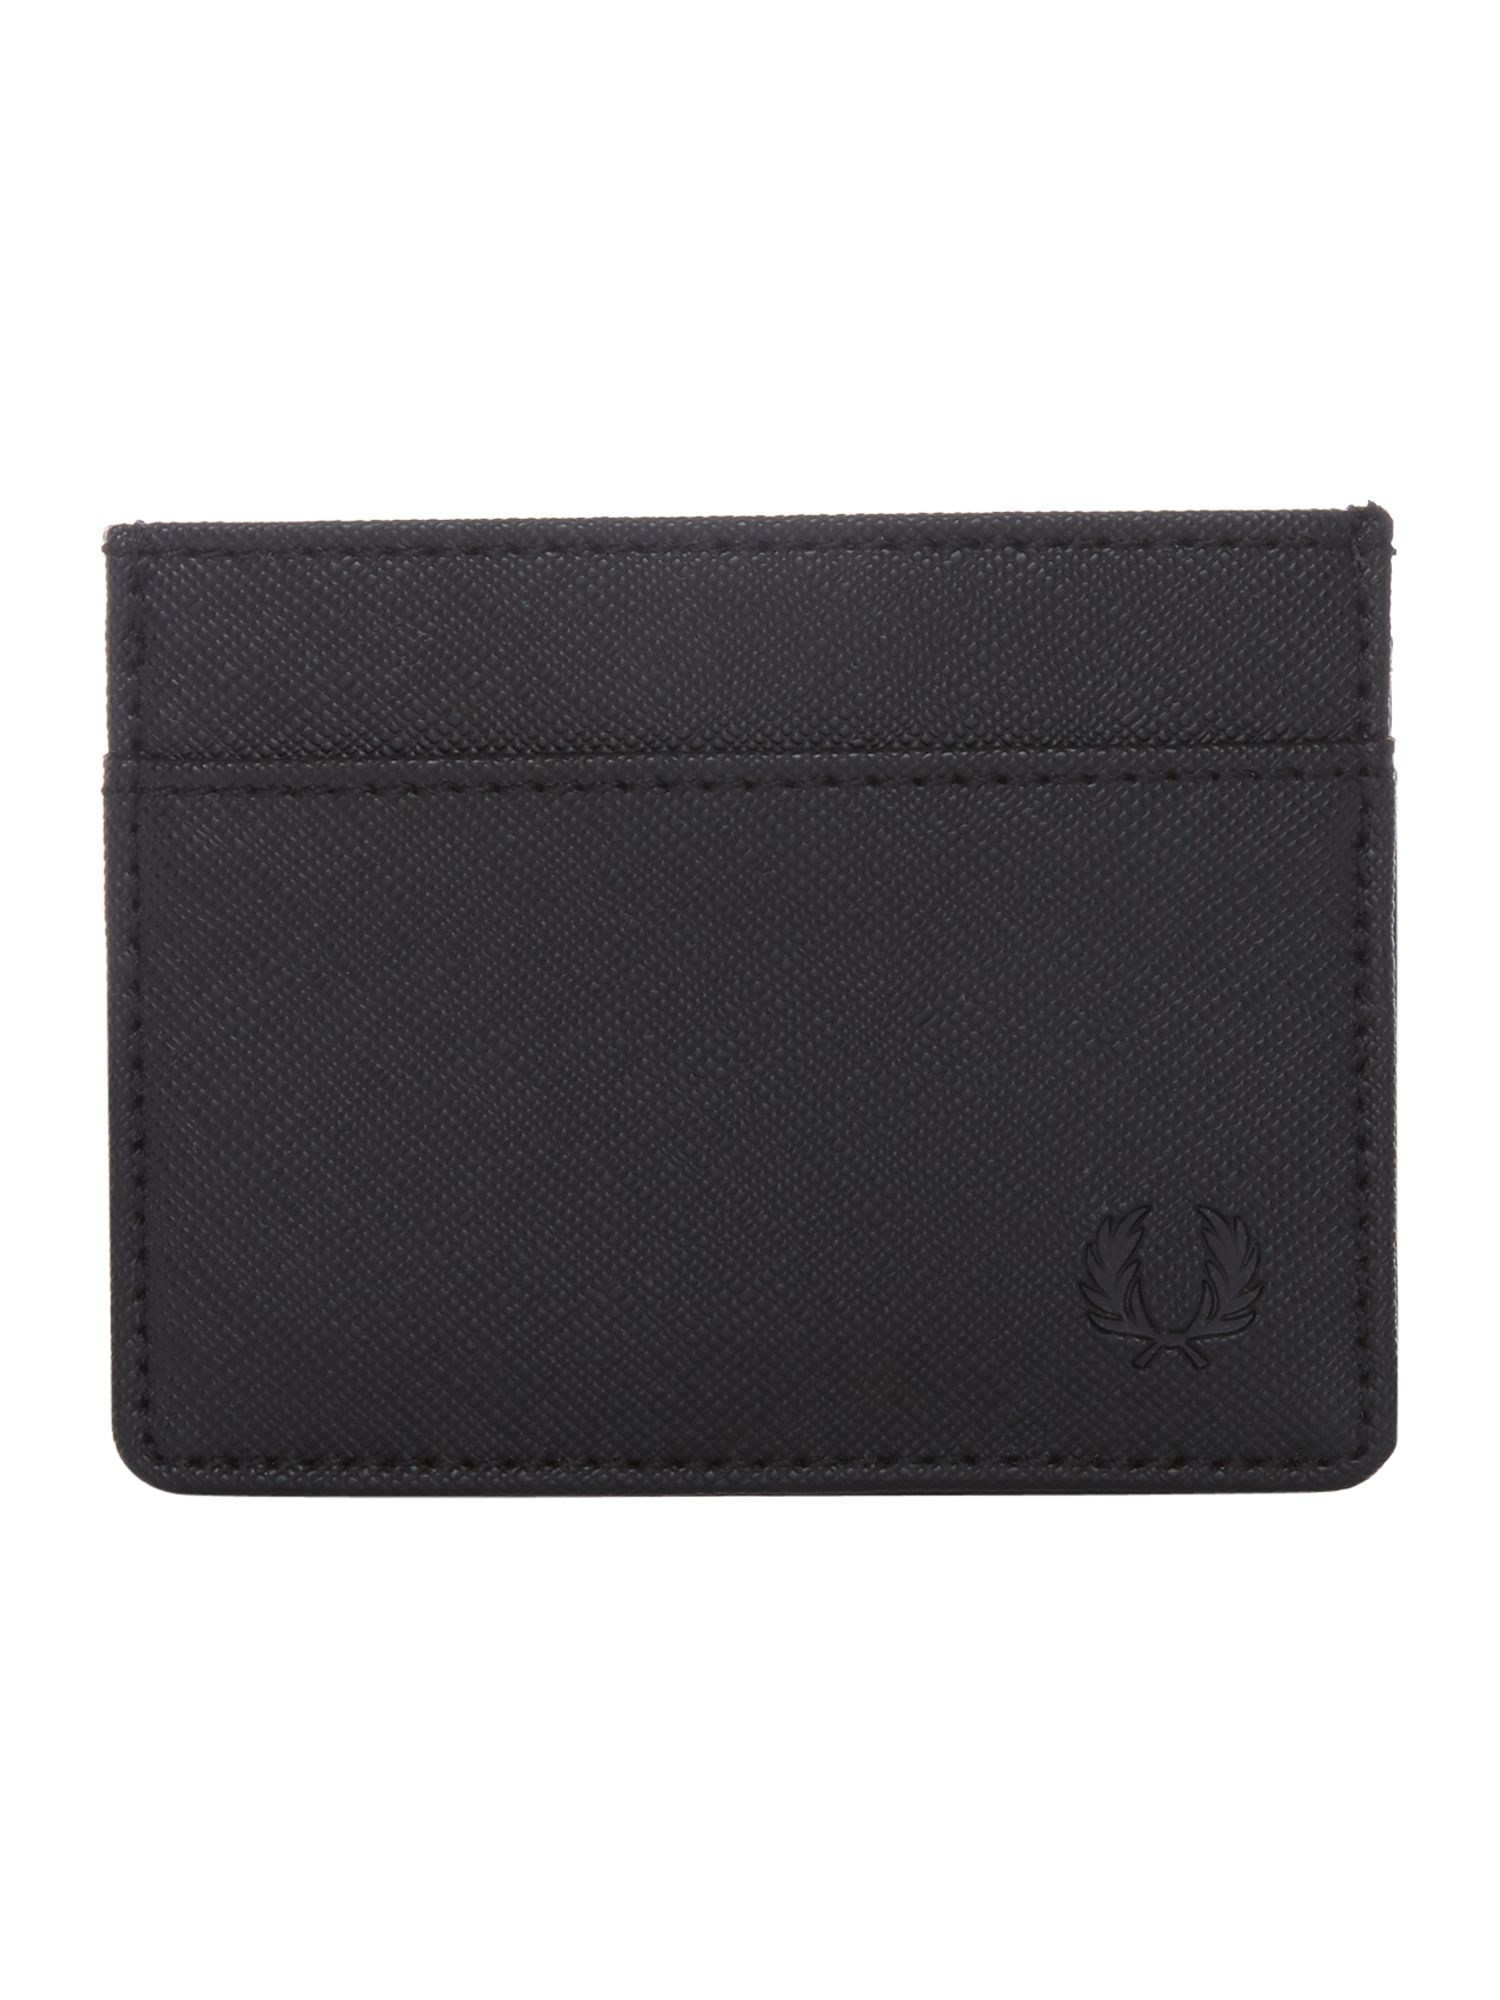 Fred Perry Saffiano Card Holder, Black